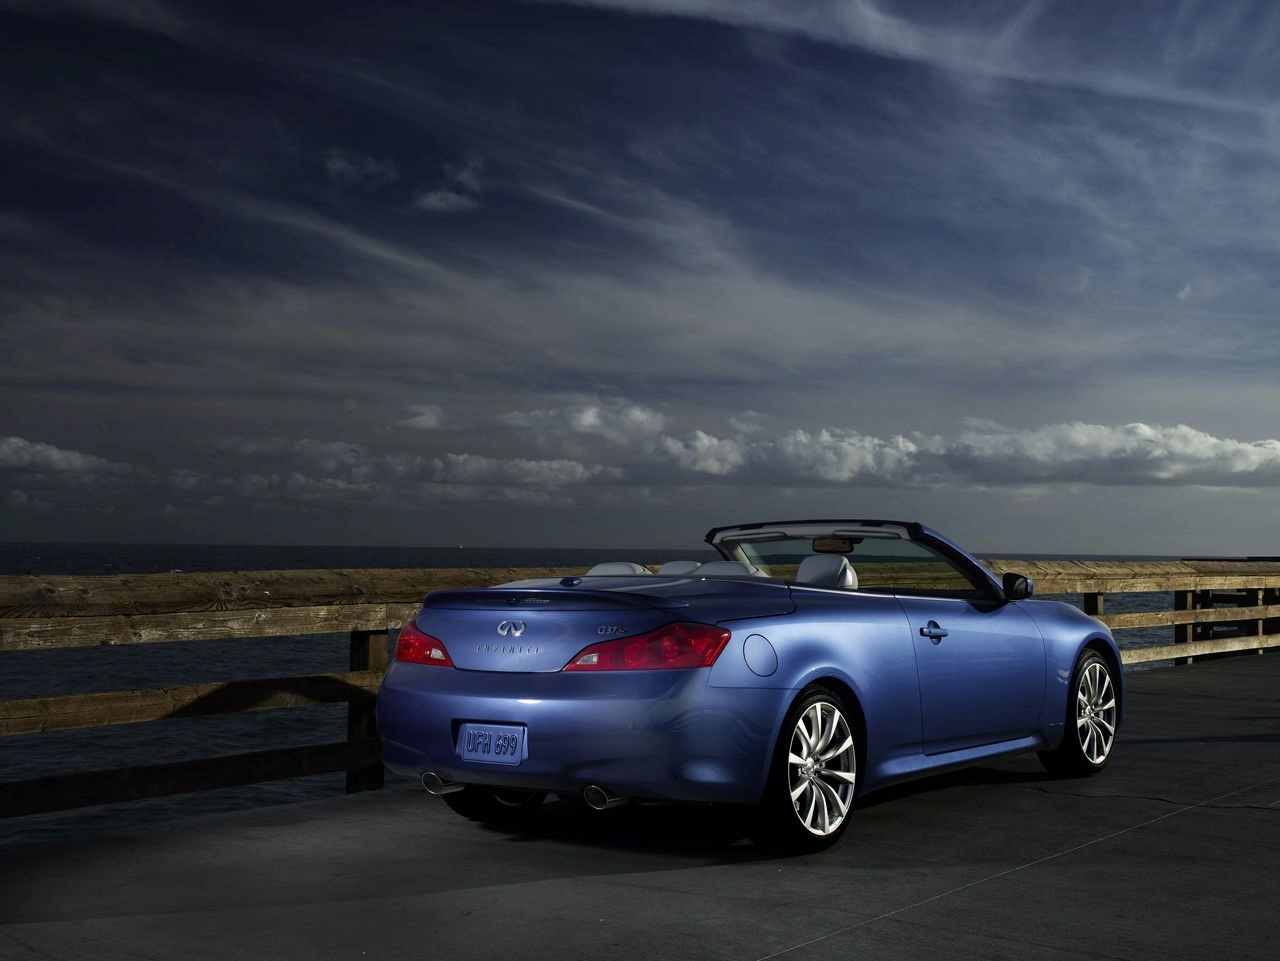 New 2009 Infiniti G37 Convertible Makes Debut At The L A